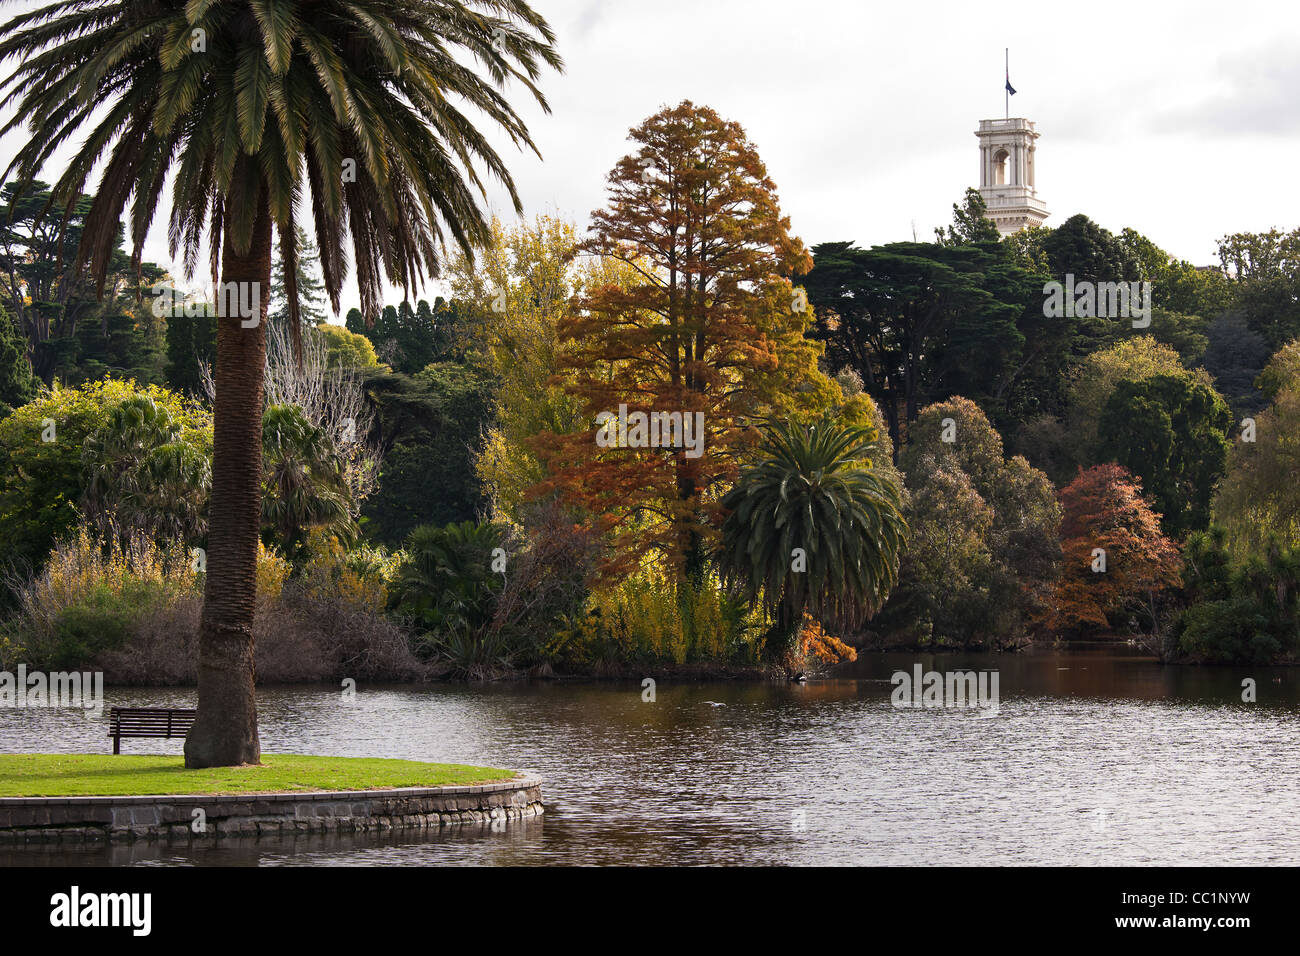 Melbourne botanic gardens ornamental lake with the government house ...